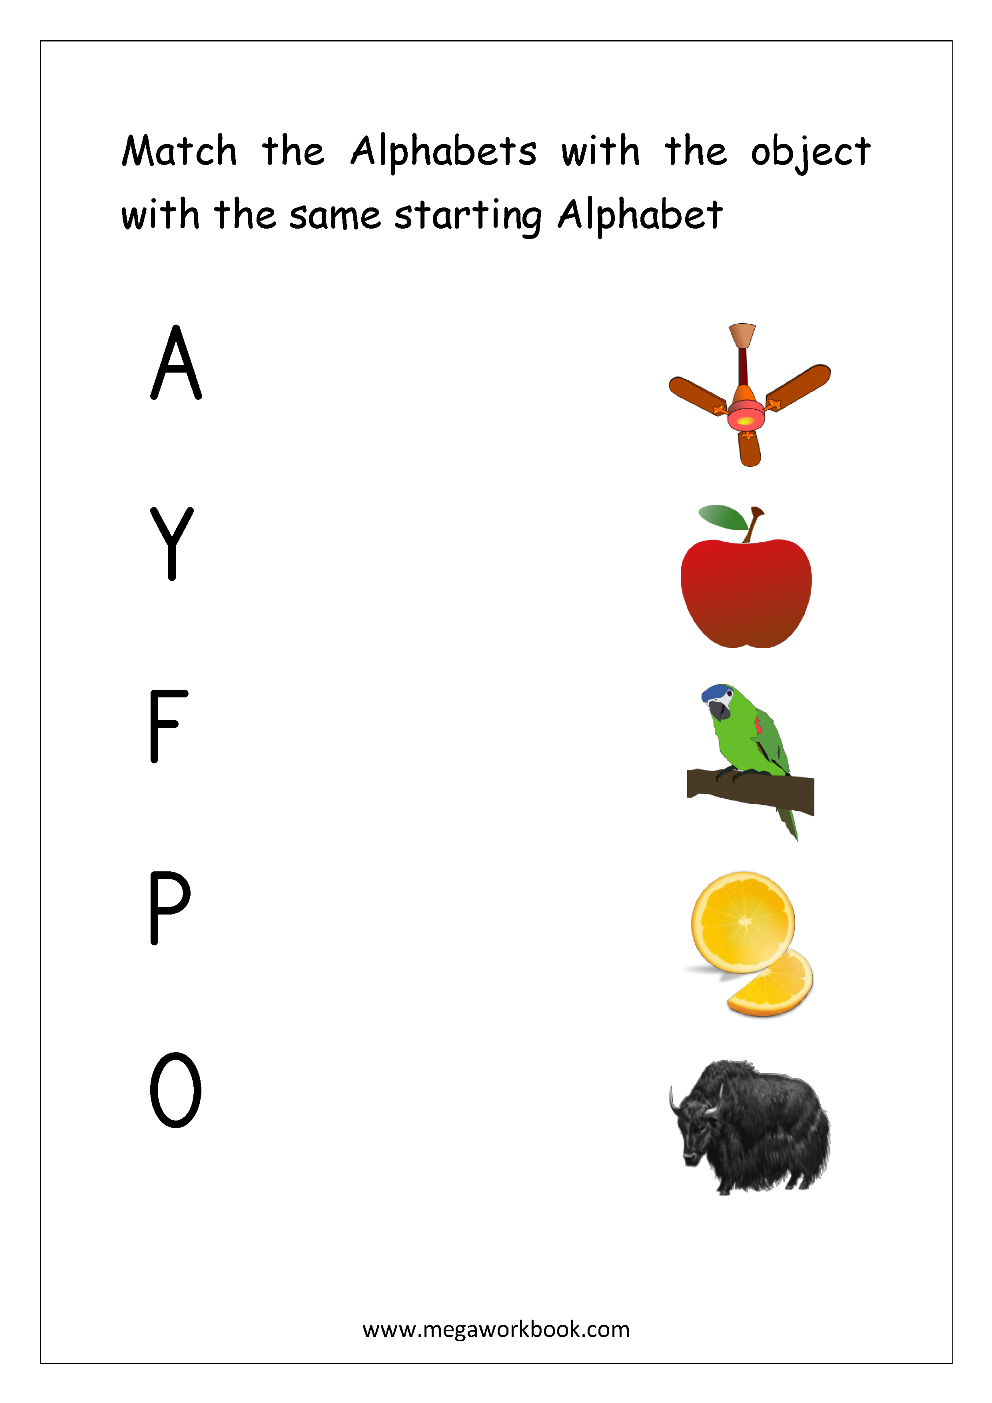 Letter Matching Worksheet - Match Object With The Starting intended for Alphabet Matching Worksheets For Nursery